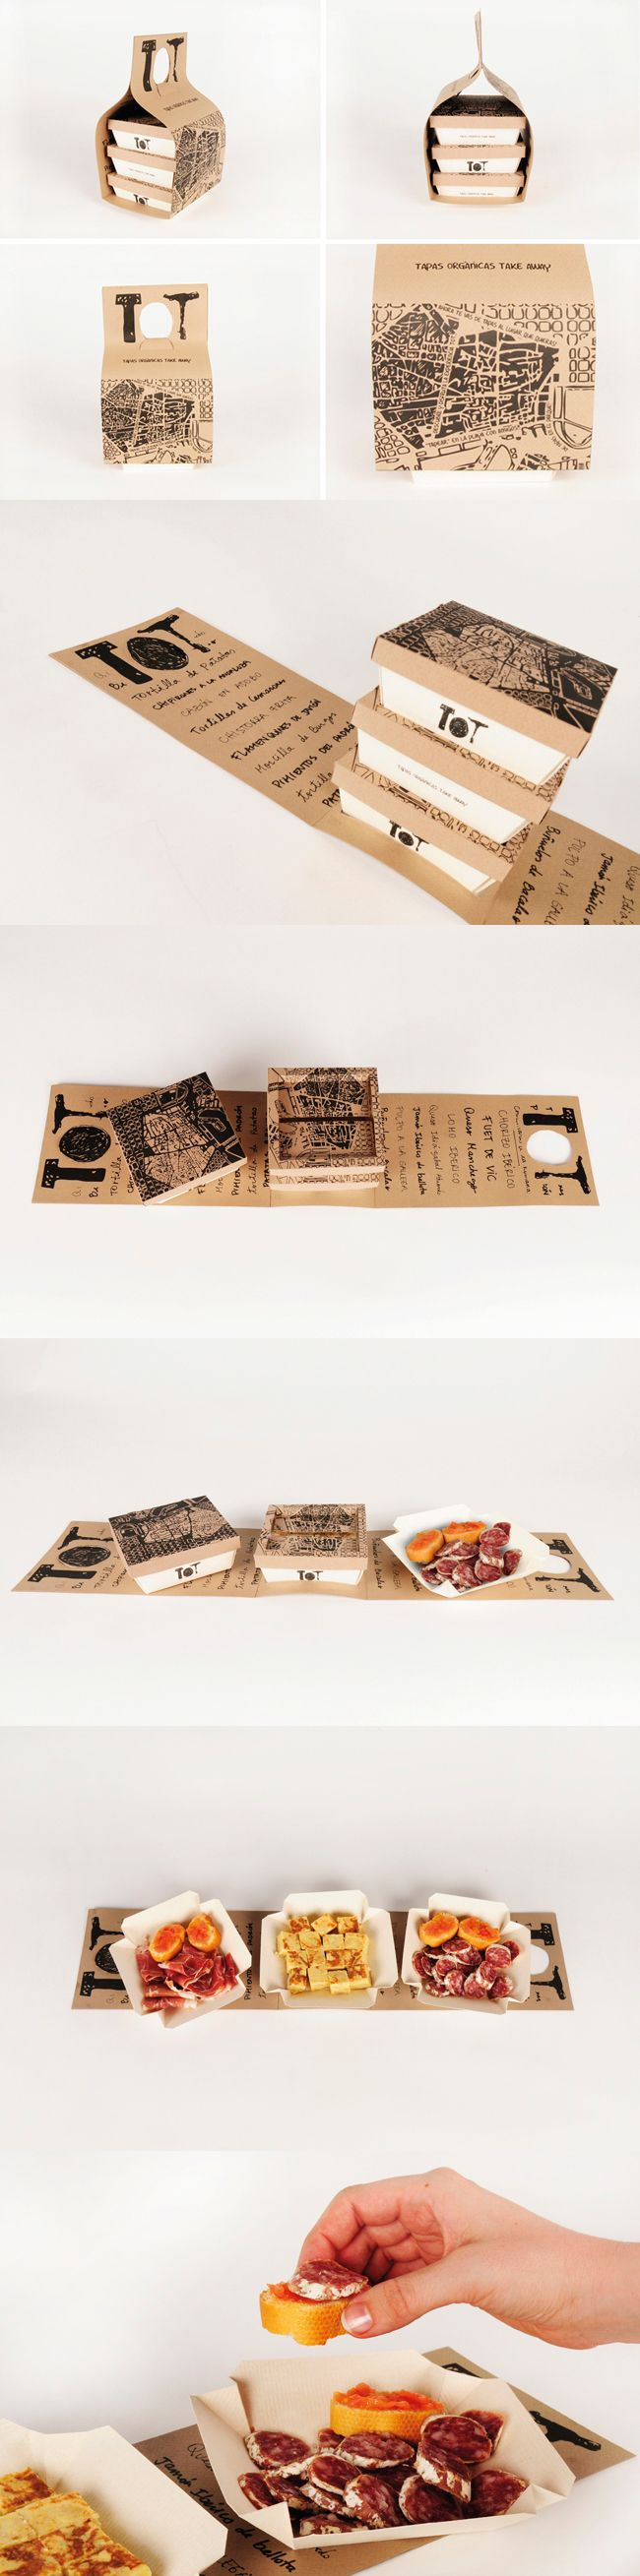 tapas take-away | TOT designed by Gloria Kelly